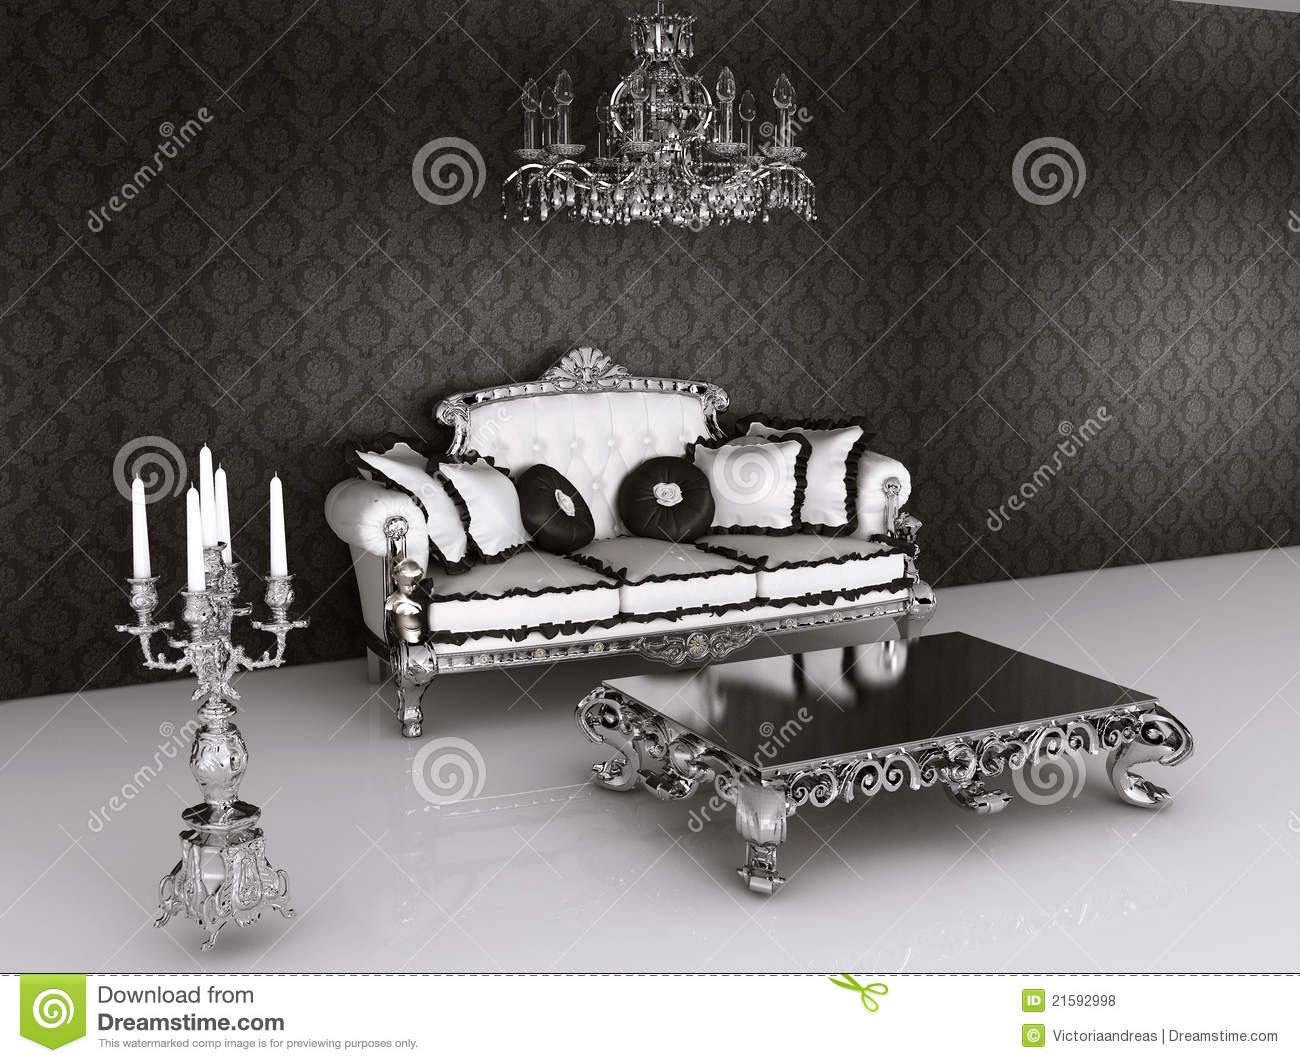 Royal Furniture In Baroque Interior. Sofa Stock Photo 21592998   Megapixl